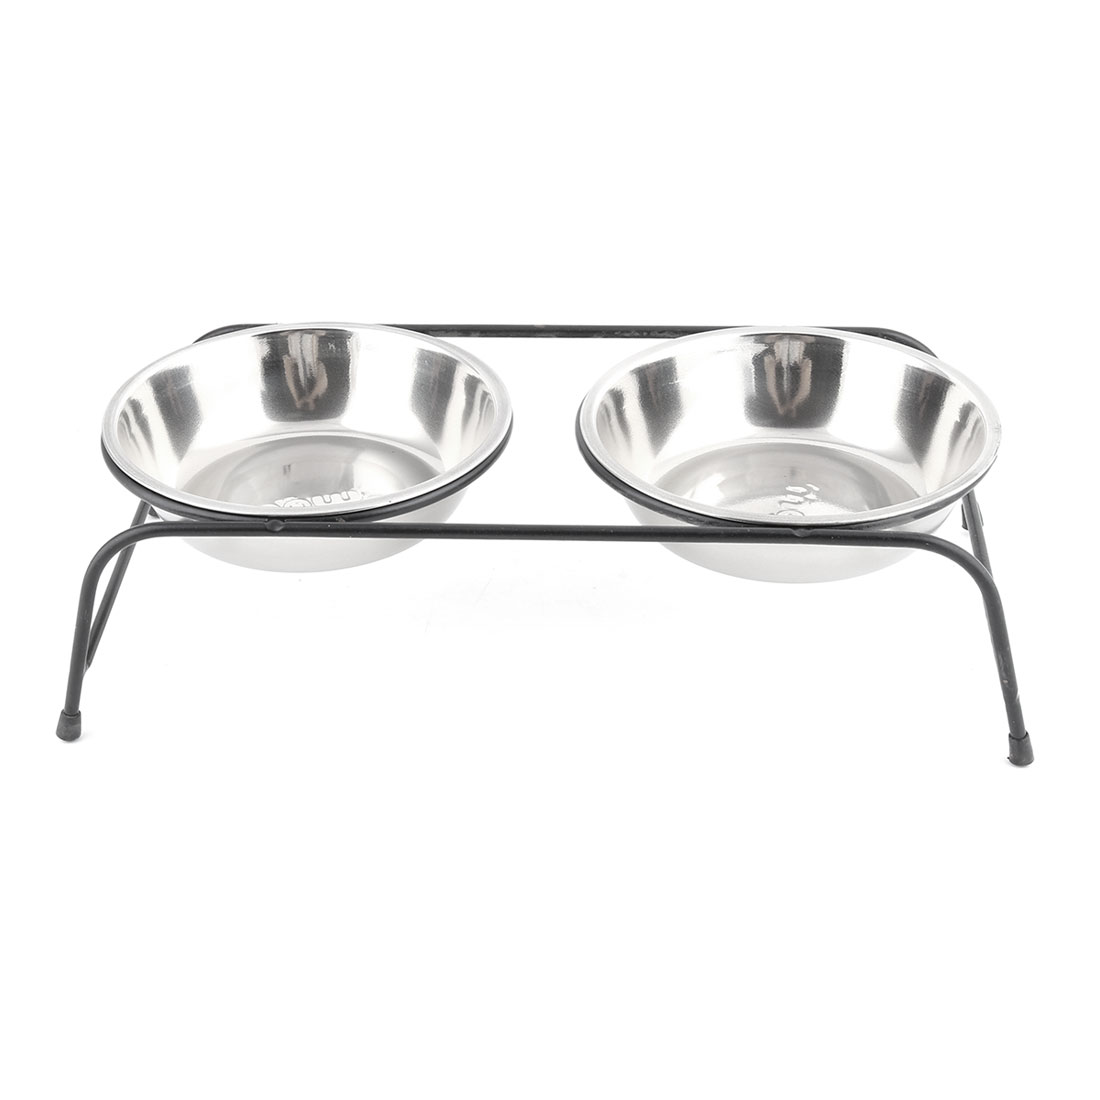 Family Metal Cat Dog Pet Food Water Feeding Container Bowl Rack Holder Stand Set